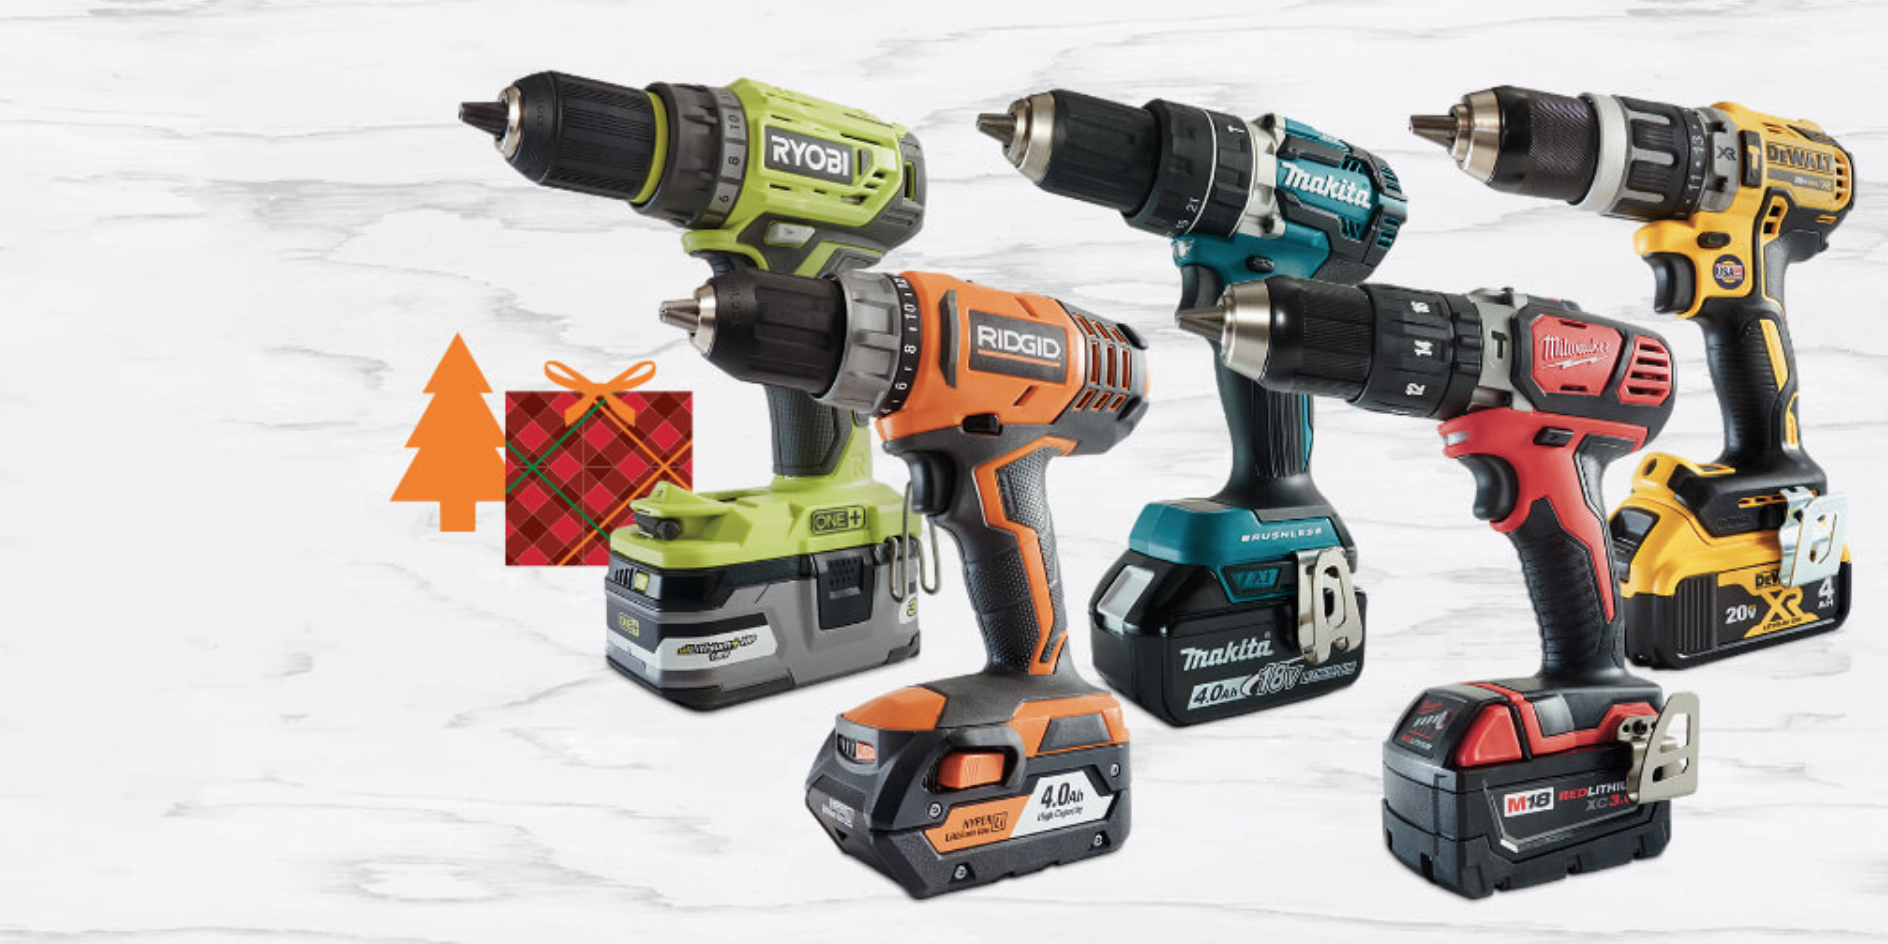 Home Depot has a massive tool kit sale w/ deals on Ryobi, DeWalt and more from $149